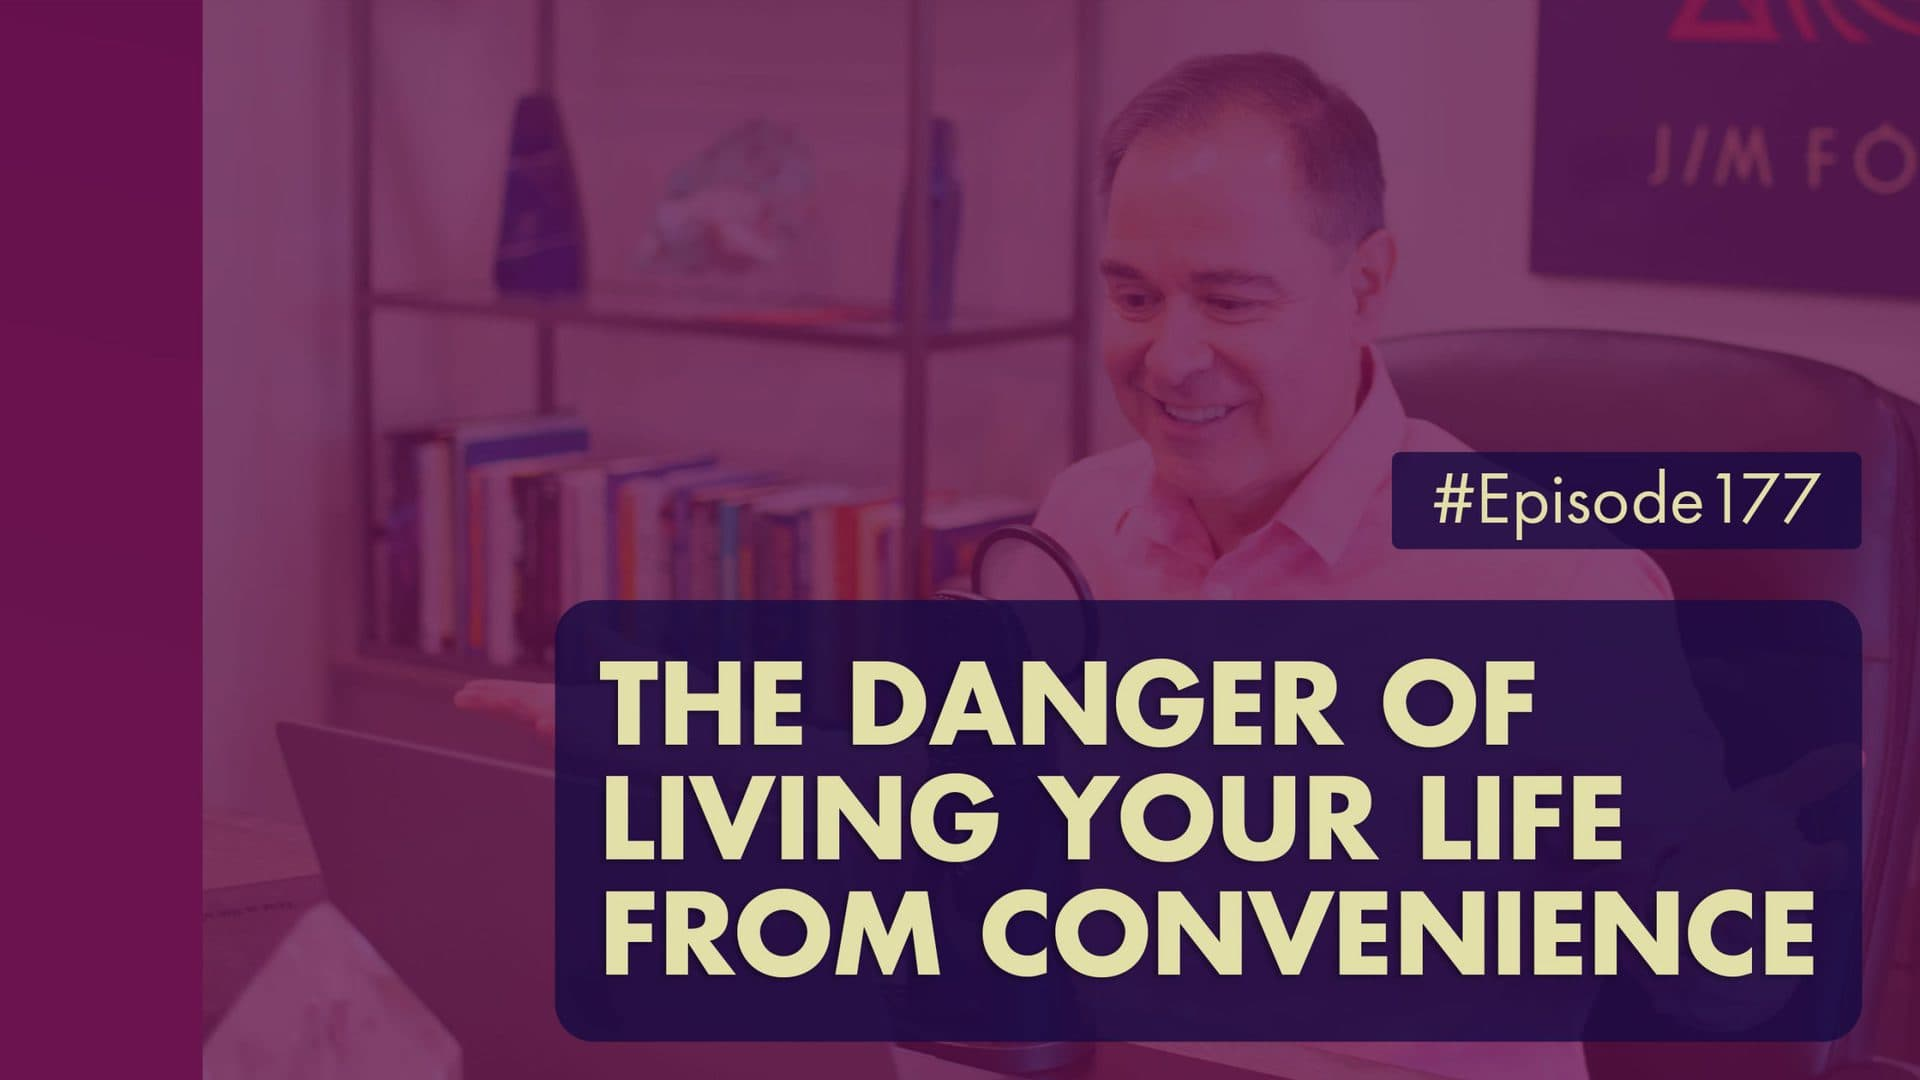 The Jim Fortin Podcast Episode 177 The Danger Of Living Your Life From Convenience scaled